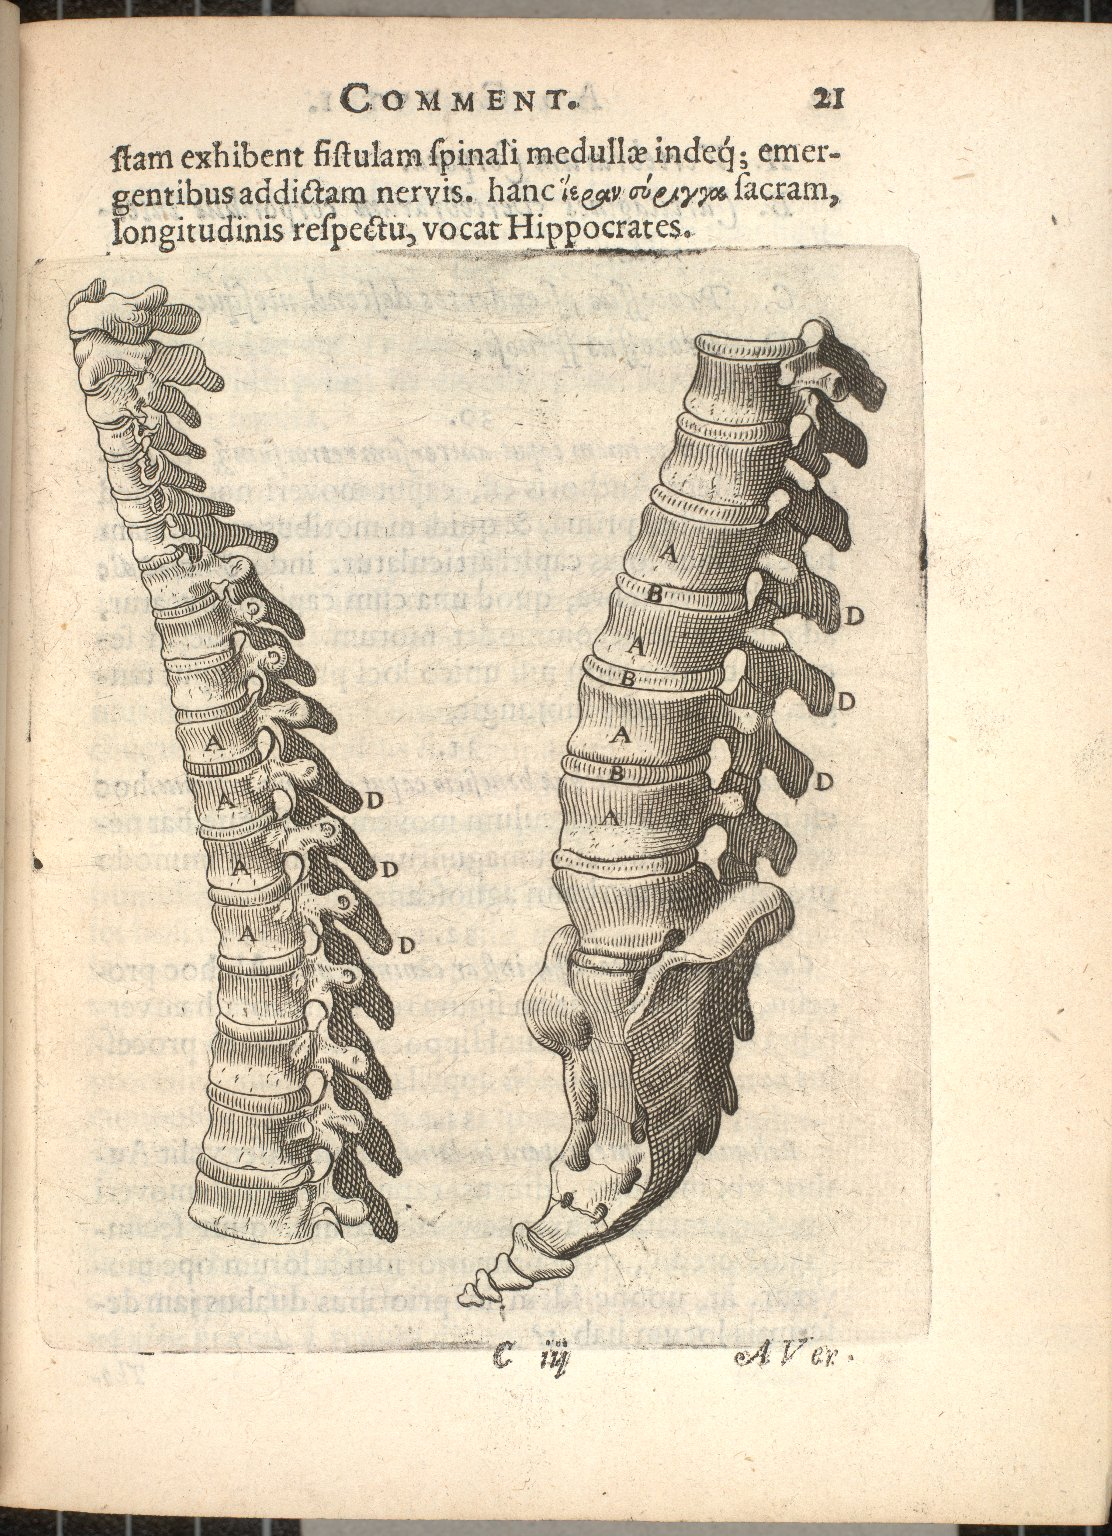 [lateral view of the spinal column]